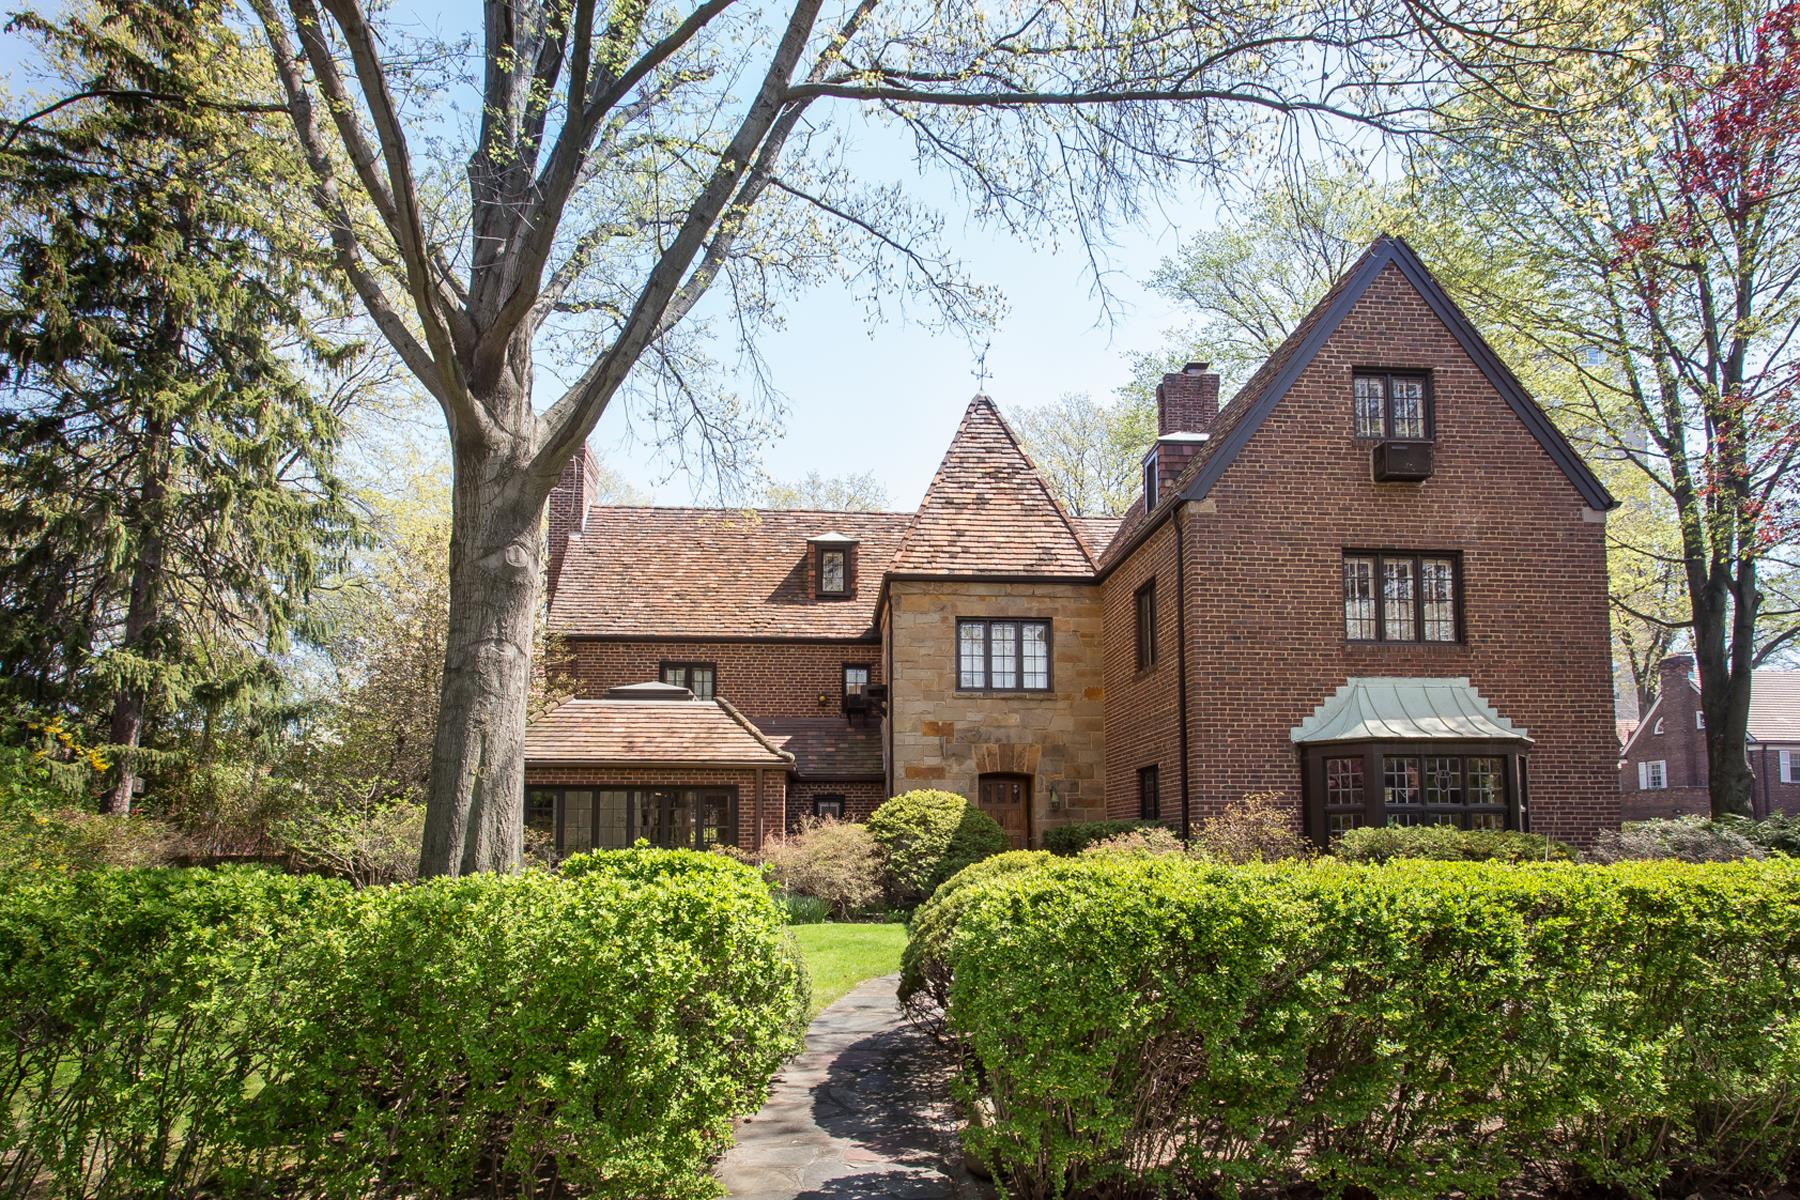 Additional Photo For Property Listing At 60 DEEPDENE ROAD, FOREST HILLS  GARDENS 60 DEEPDENE ROAD